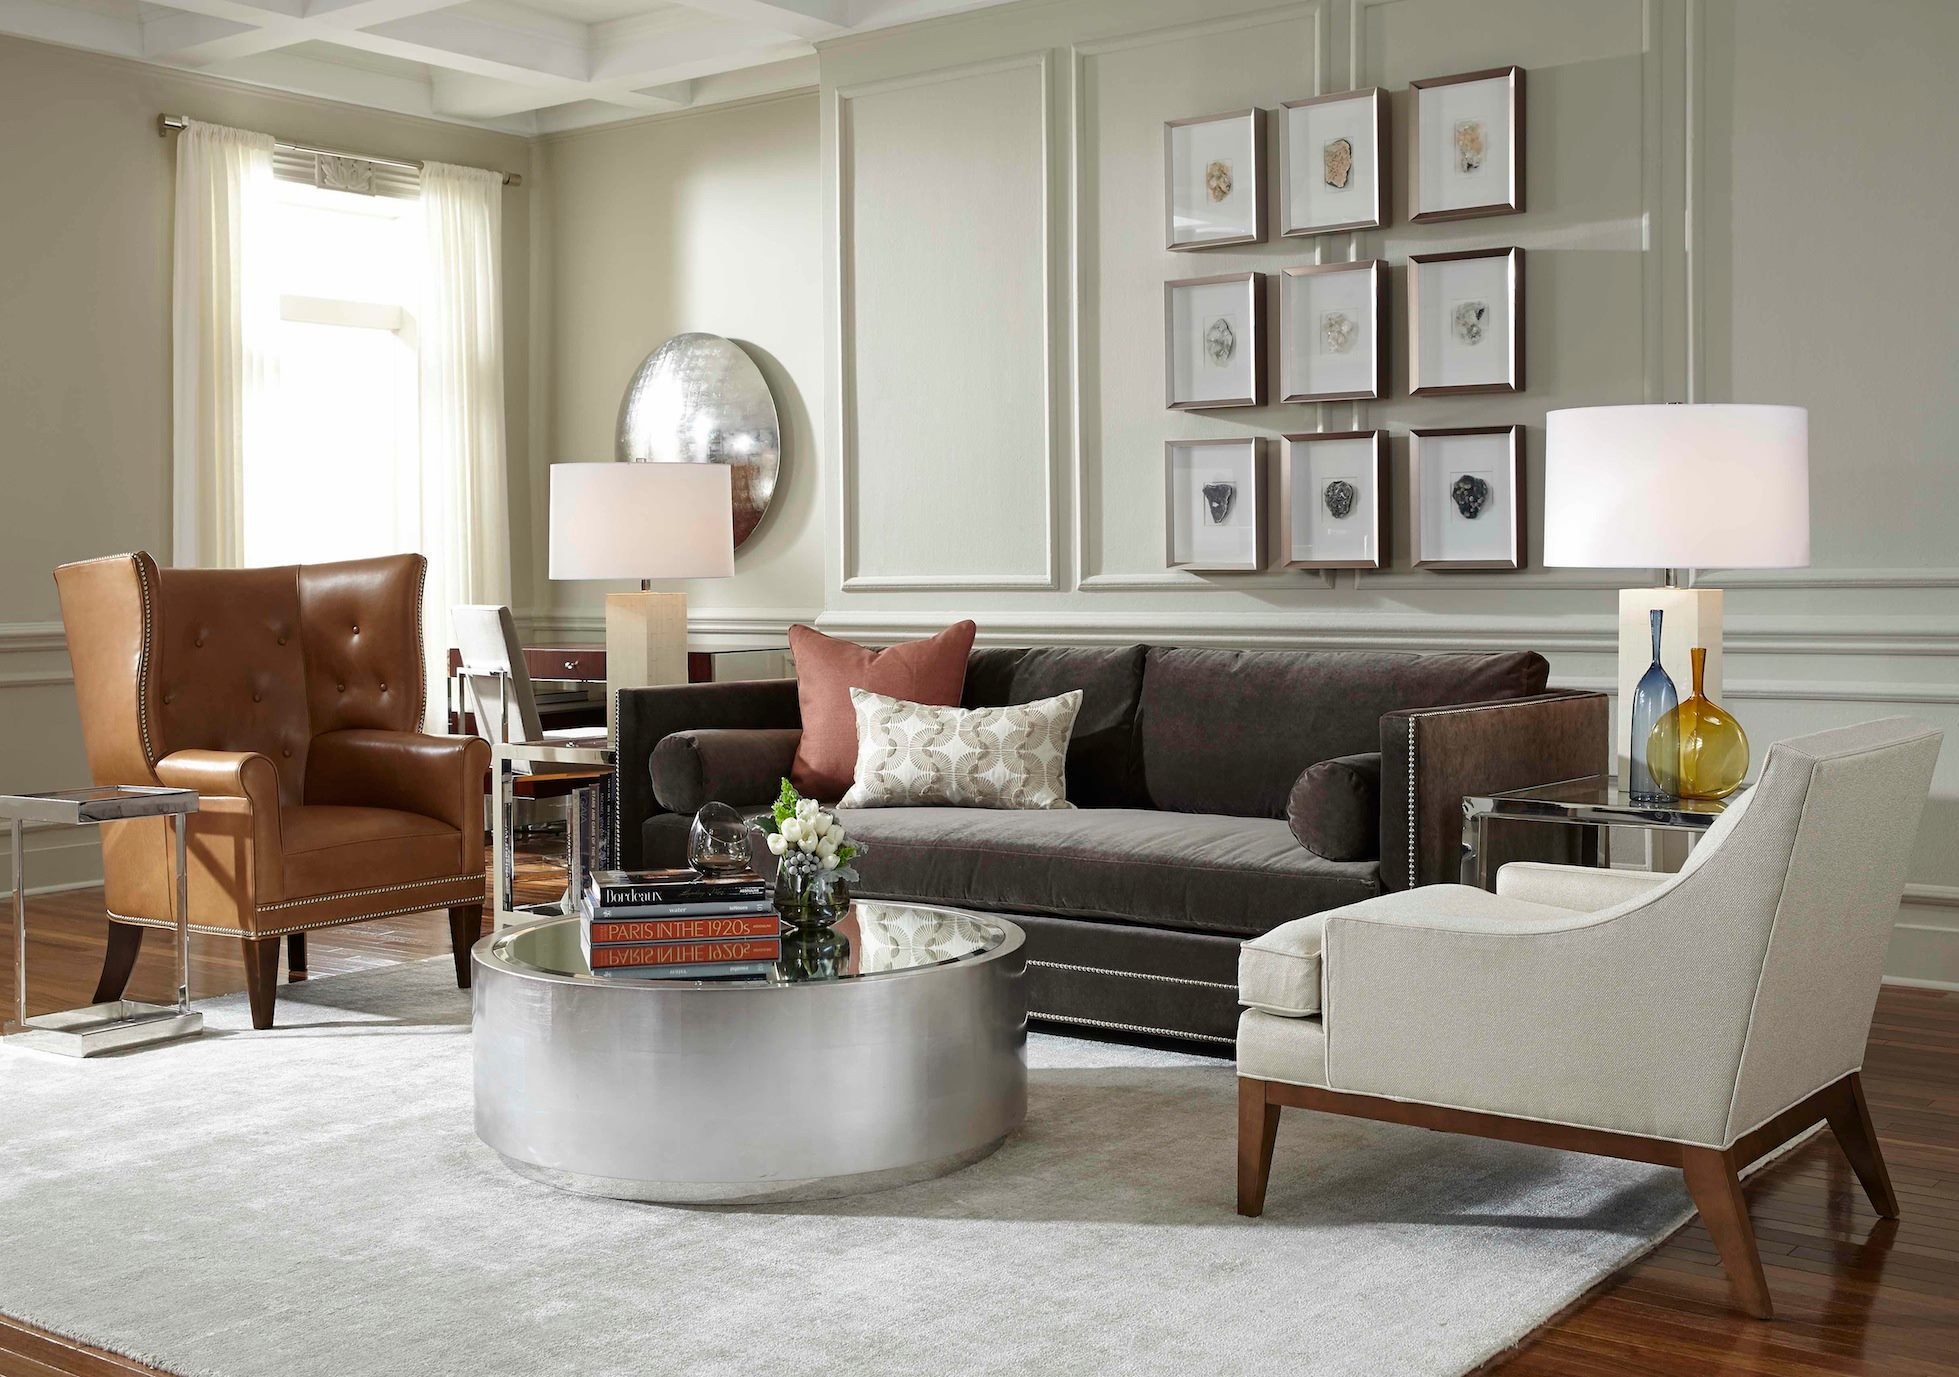 38 of miami 39 s best home goods and furniture stores 2015 for Modern style furniture stores